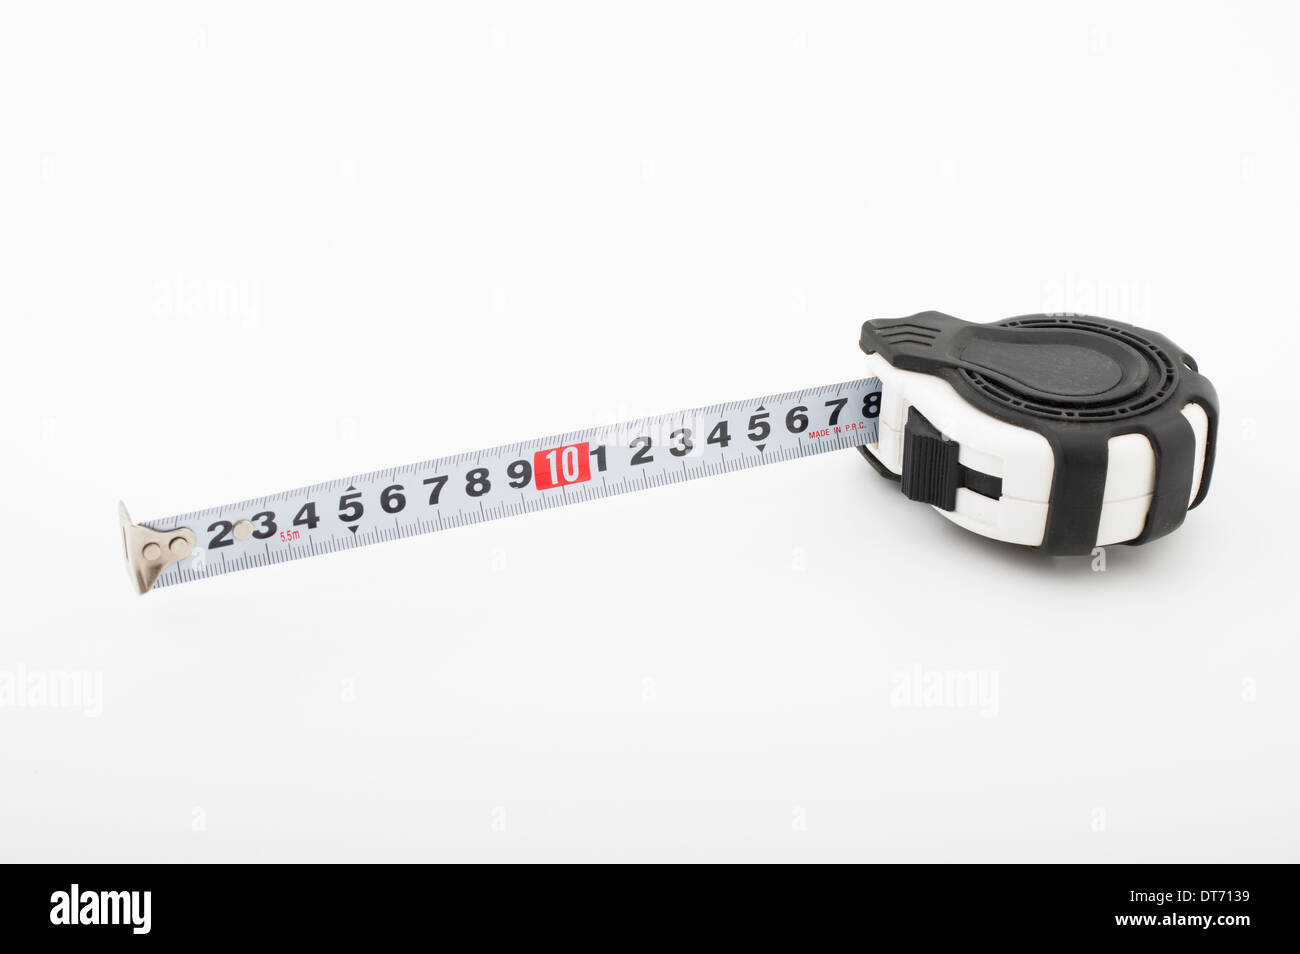 Self-retracting roll-up tape measure ( metric ) a flexible ruler - Stock Image